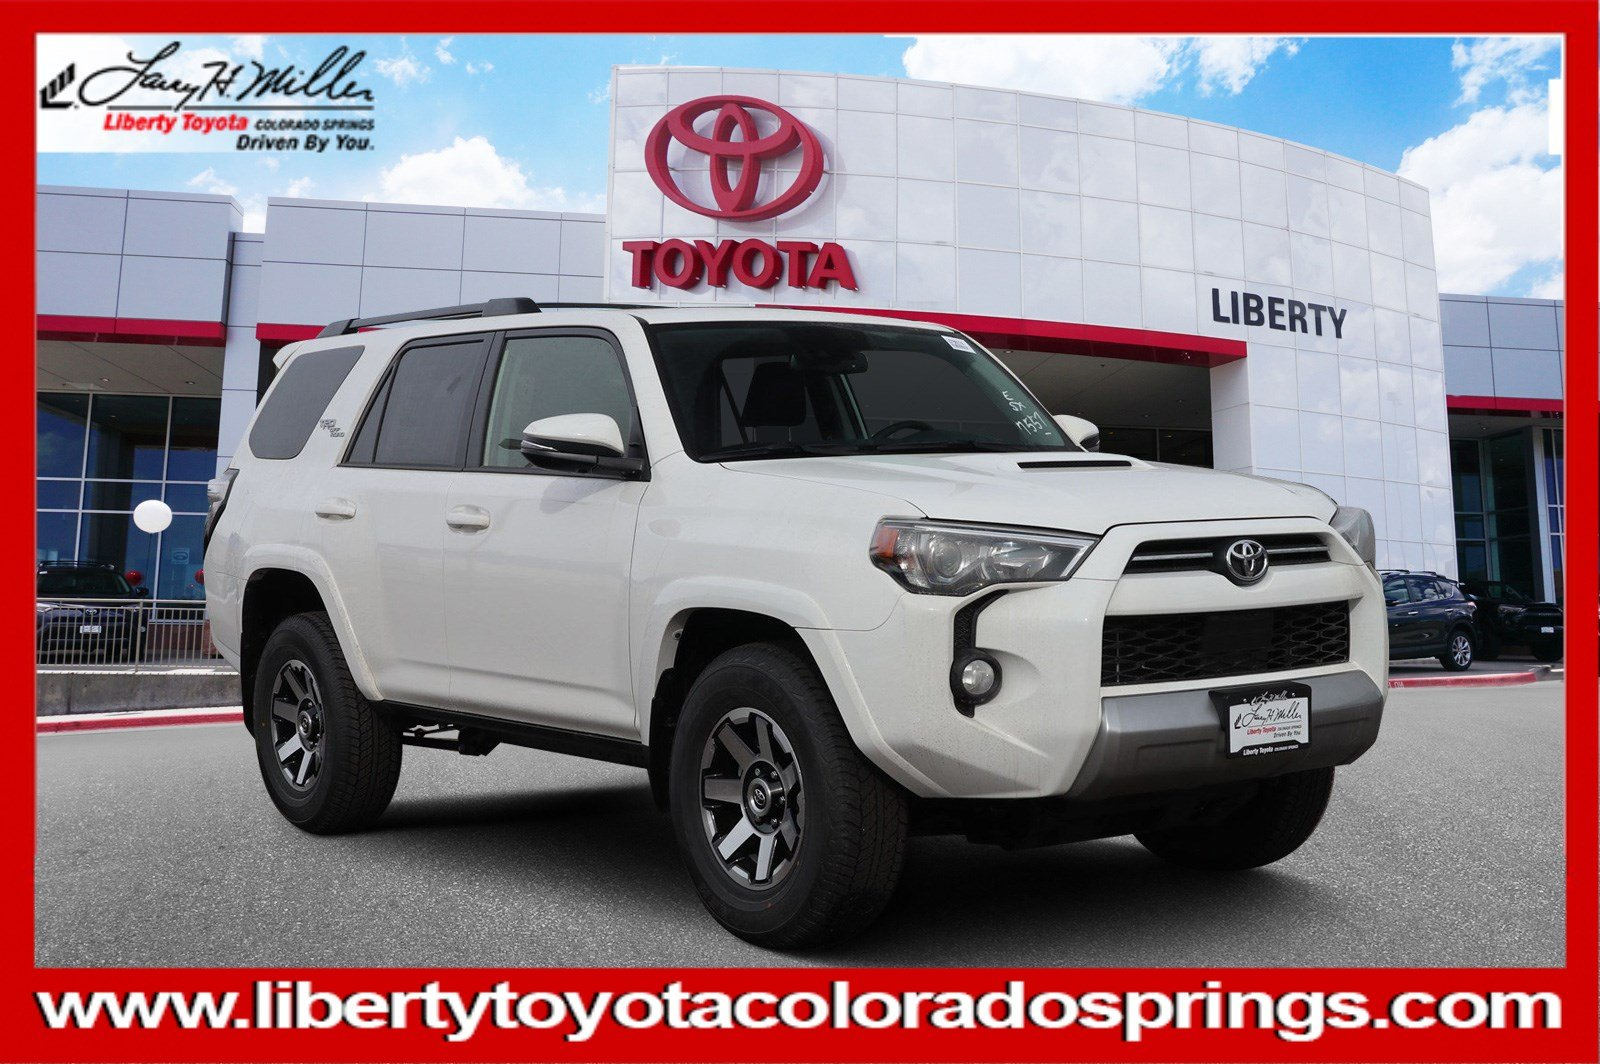 New 2020 Toyota 4runner For Sale Colorado Springs Co Call 877 805 8020 With Stock L5751527